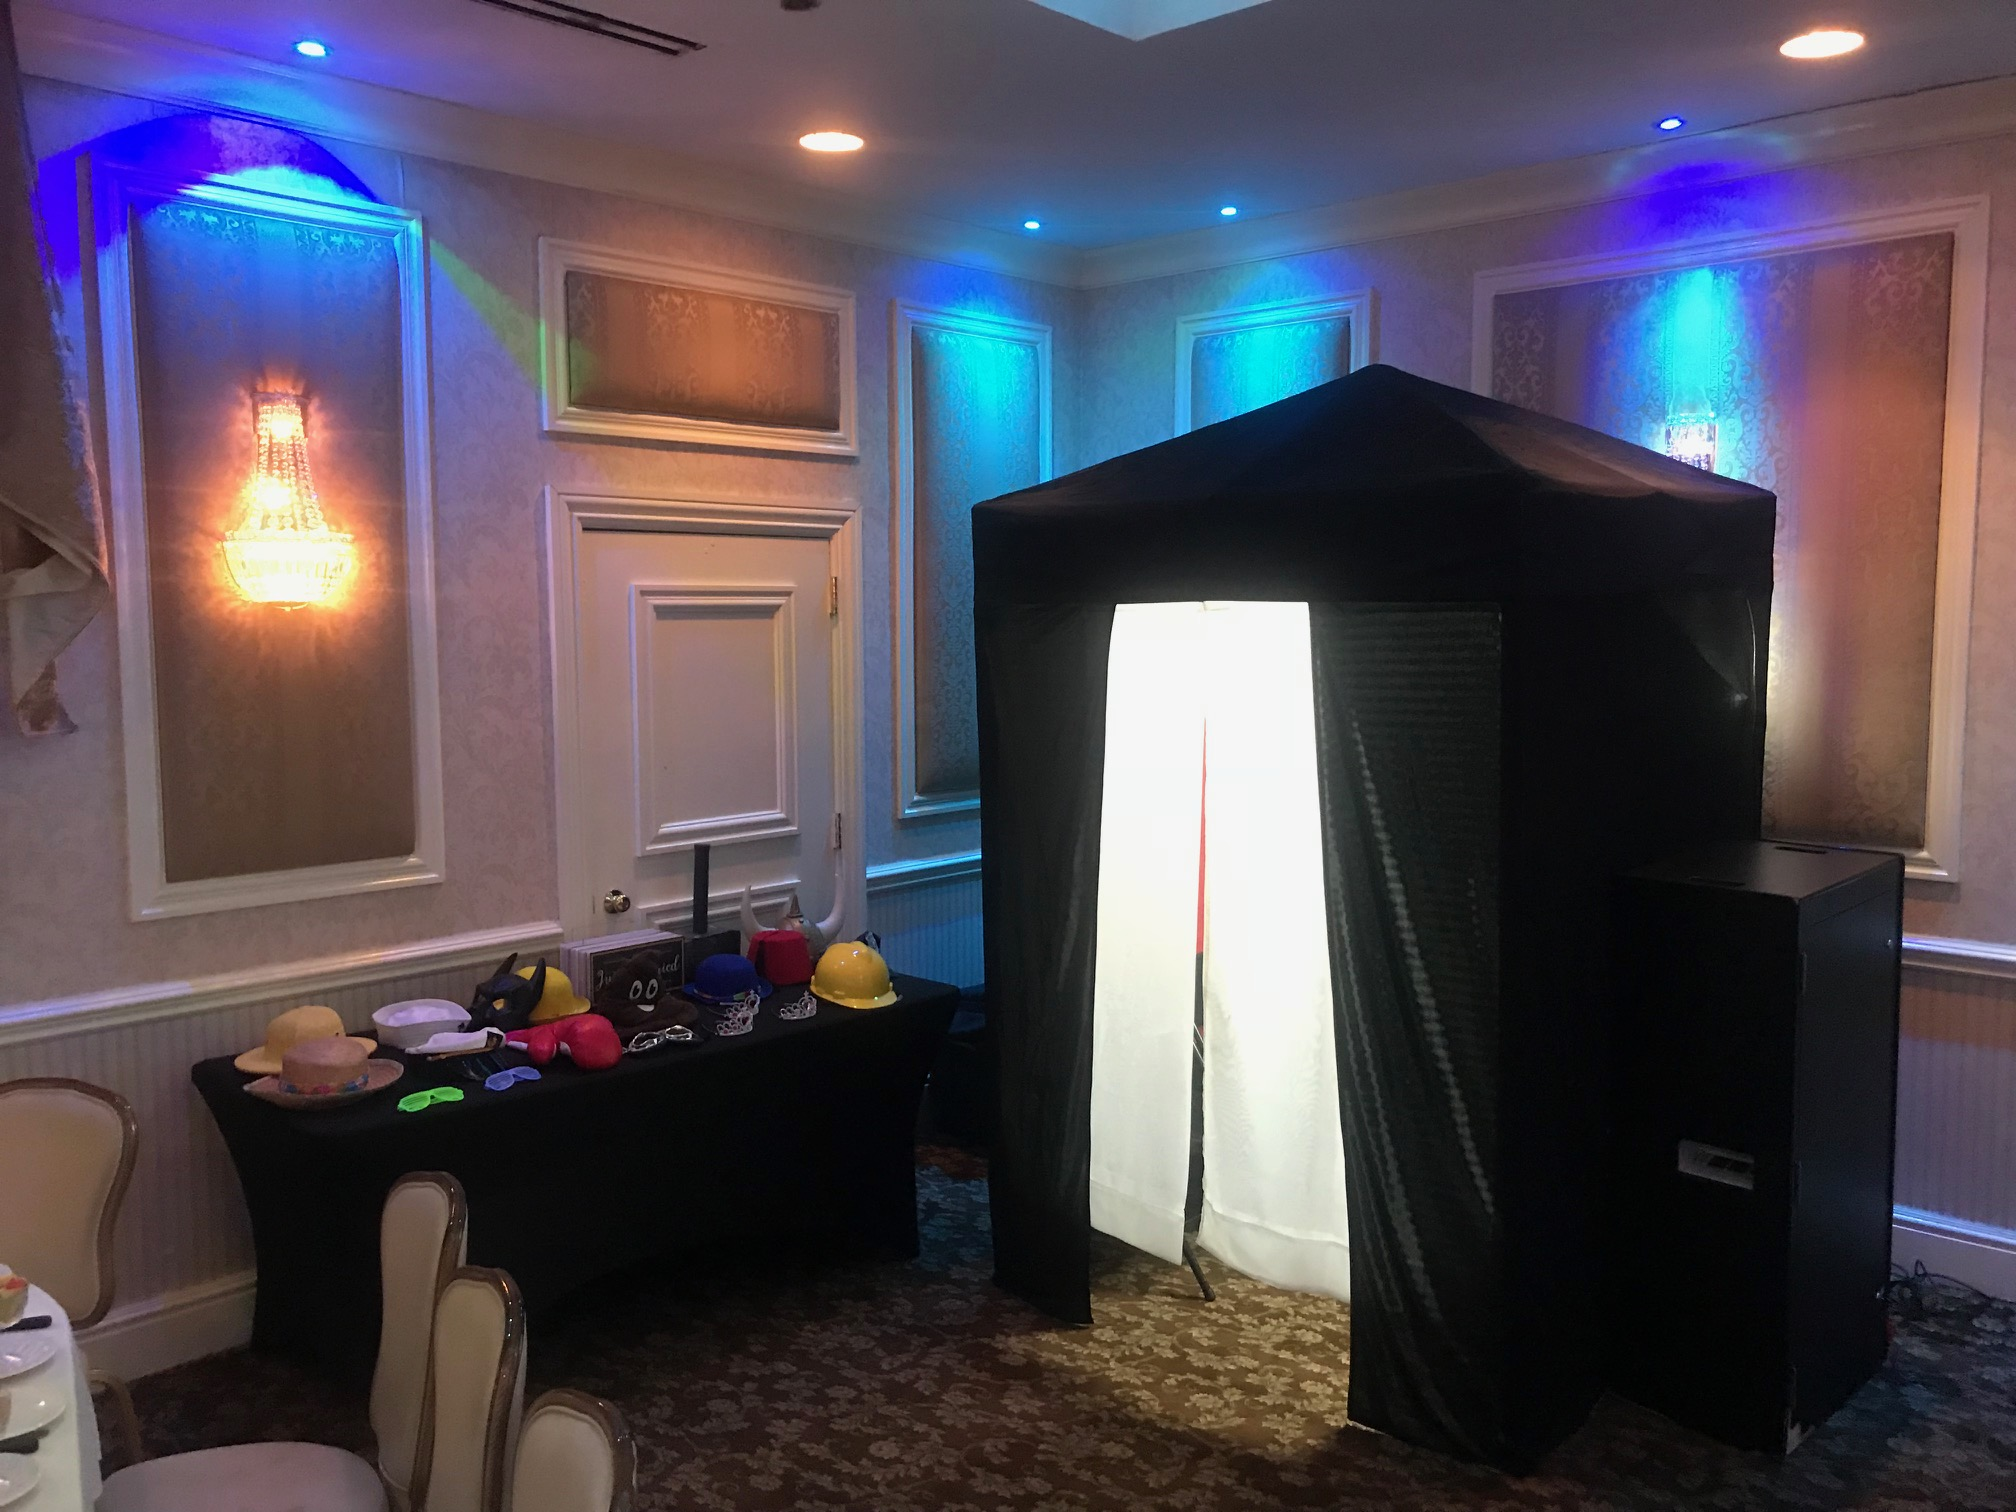 Our enclosed booth at the Poughkeepsie Grand Hotel!